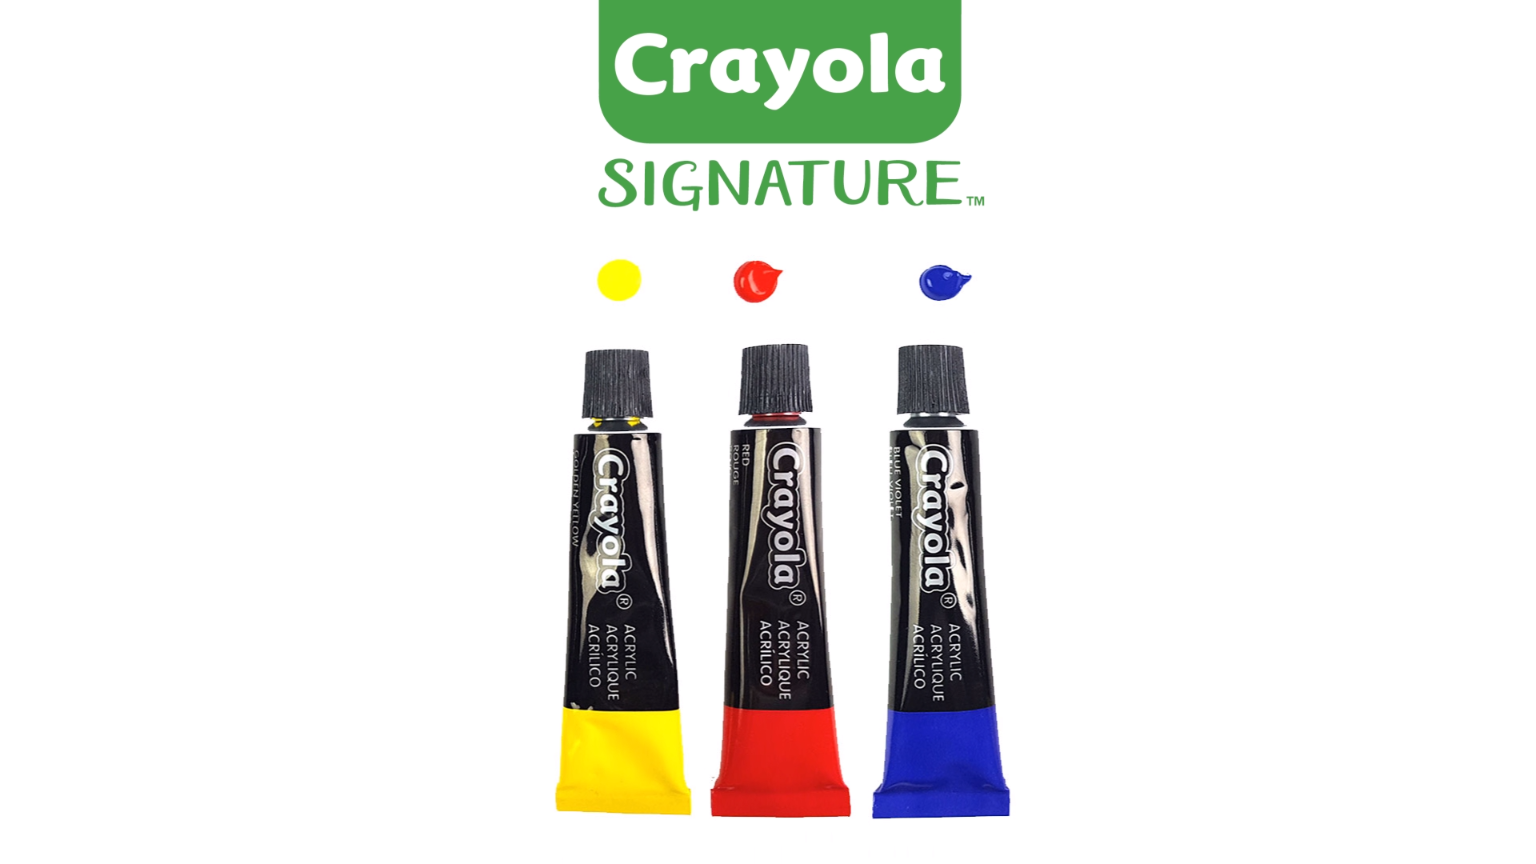 Take Your Artwork To The Next Level With Crayola Signature